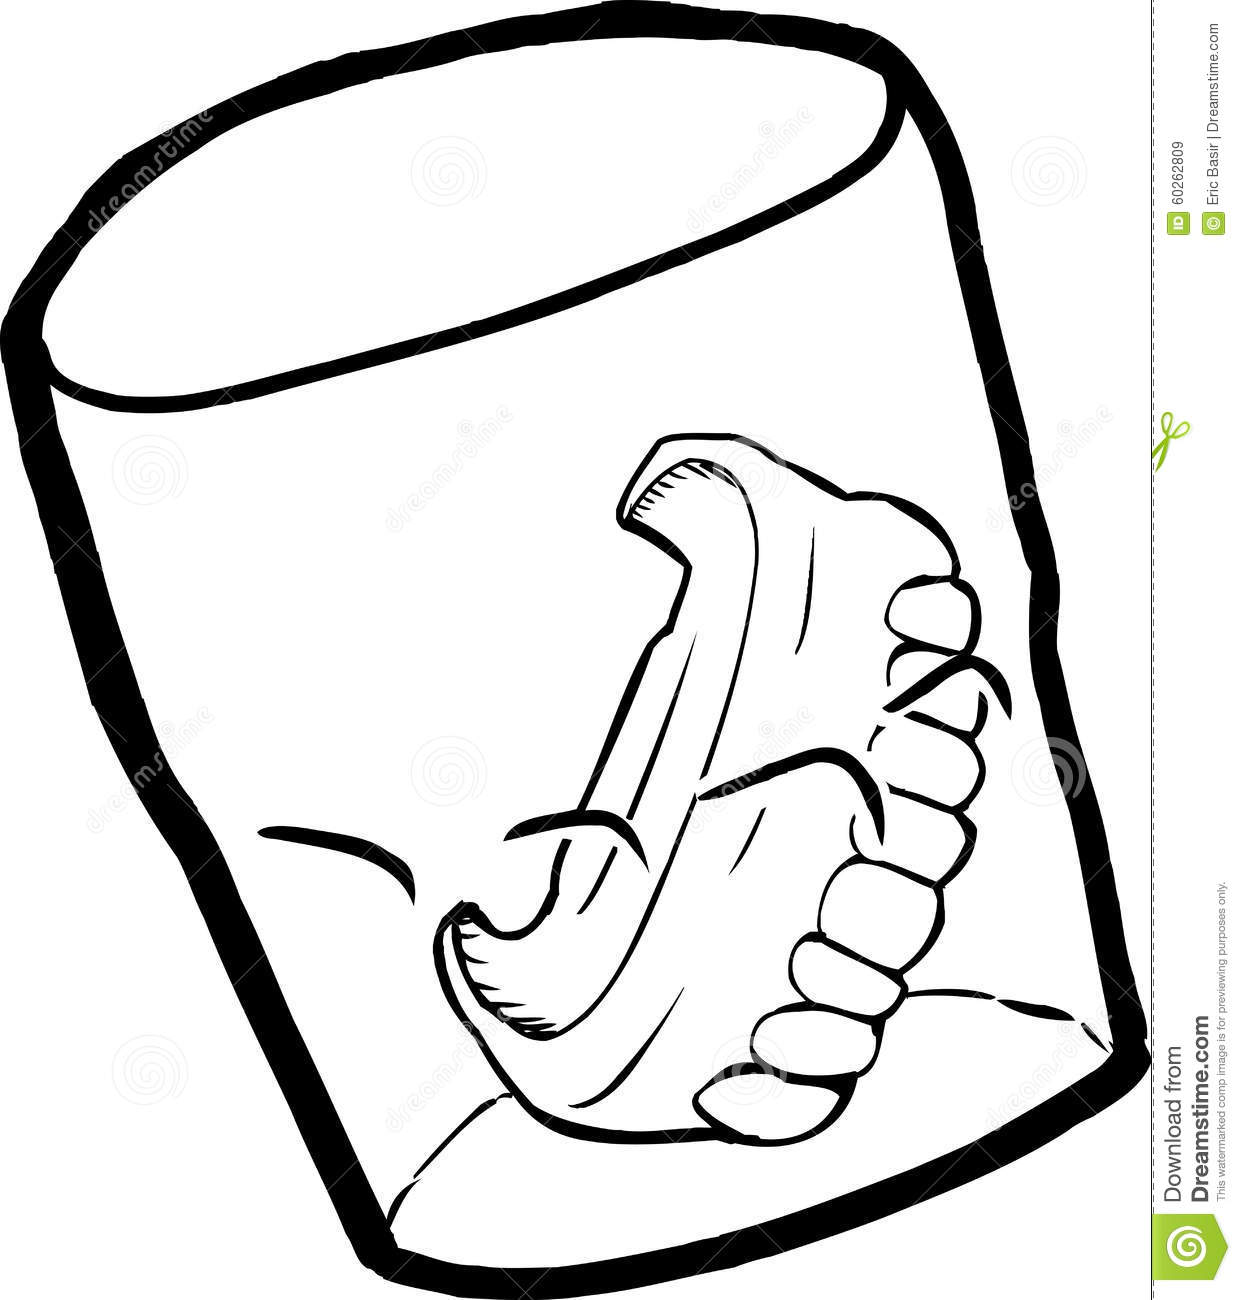 Outline of Dentures in Cup stock illustration